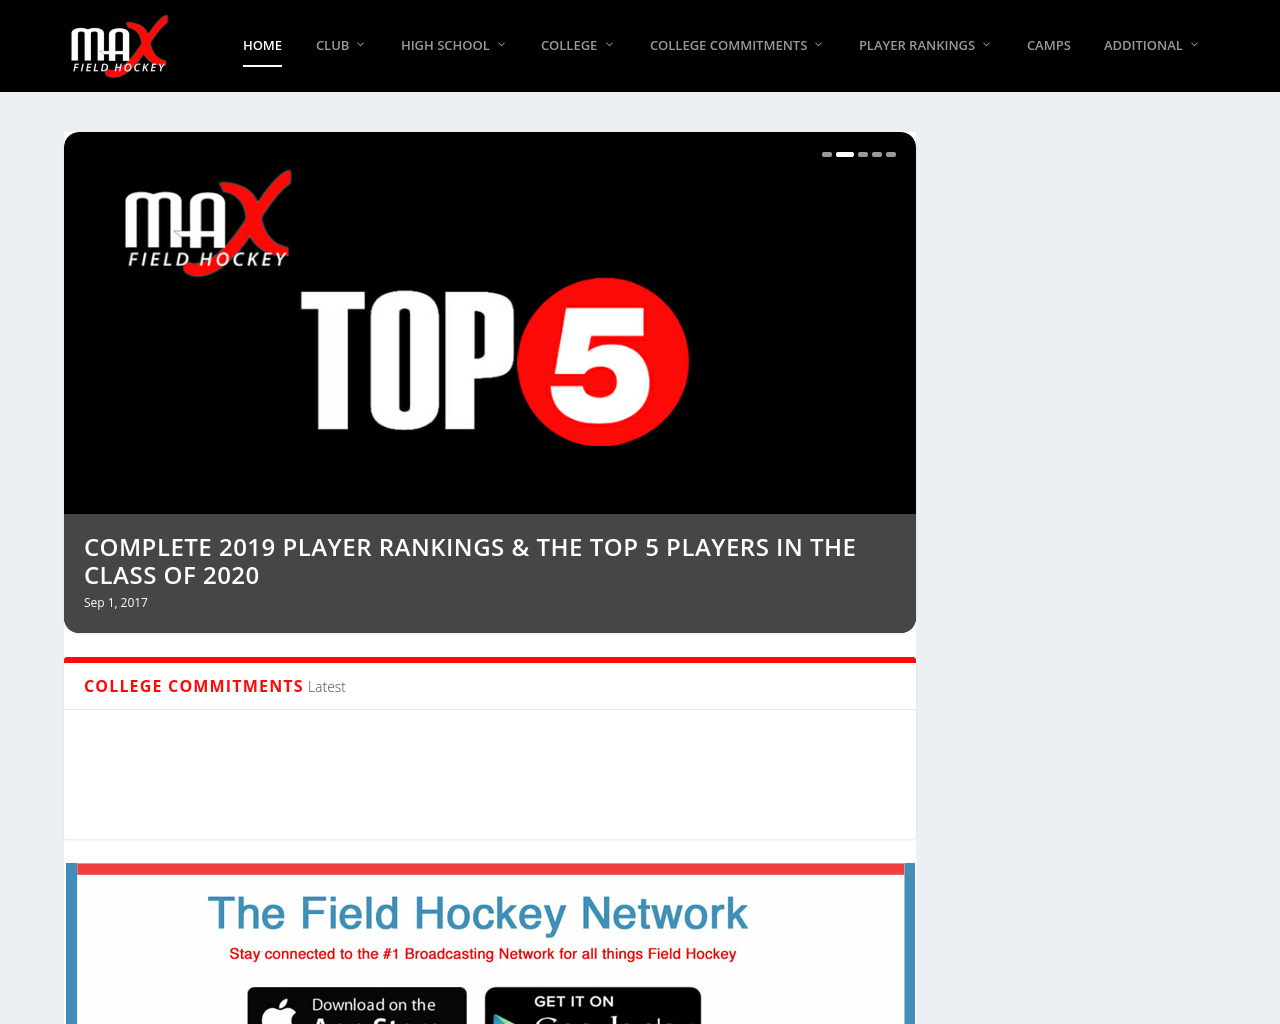 Max-Field-Hockey-Advertising-Reviews-Pricing